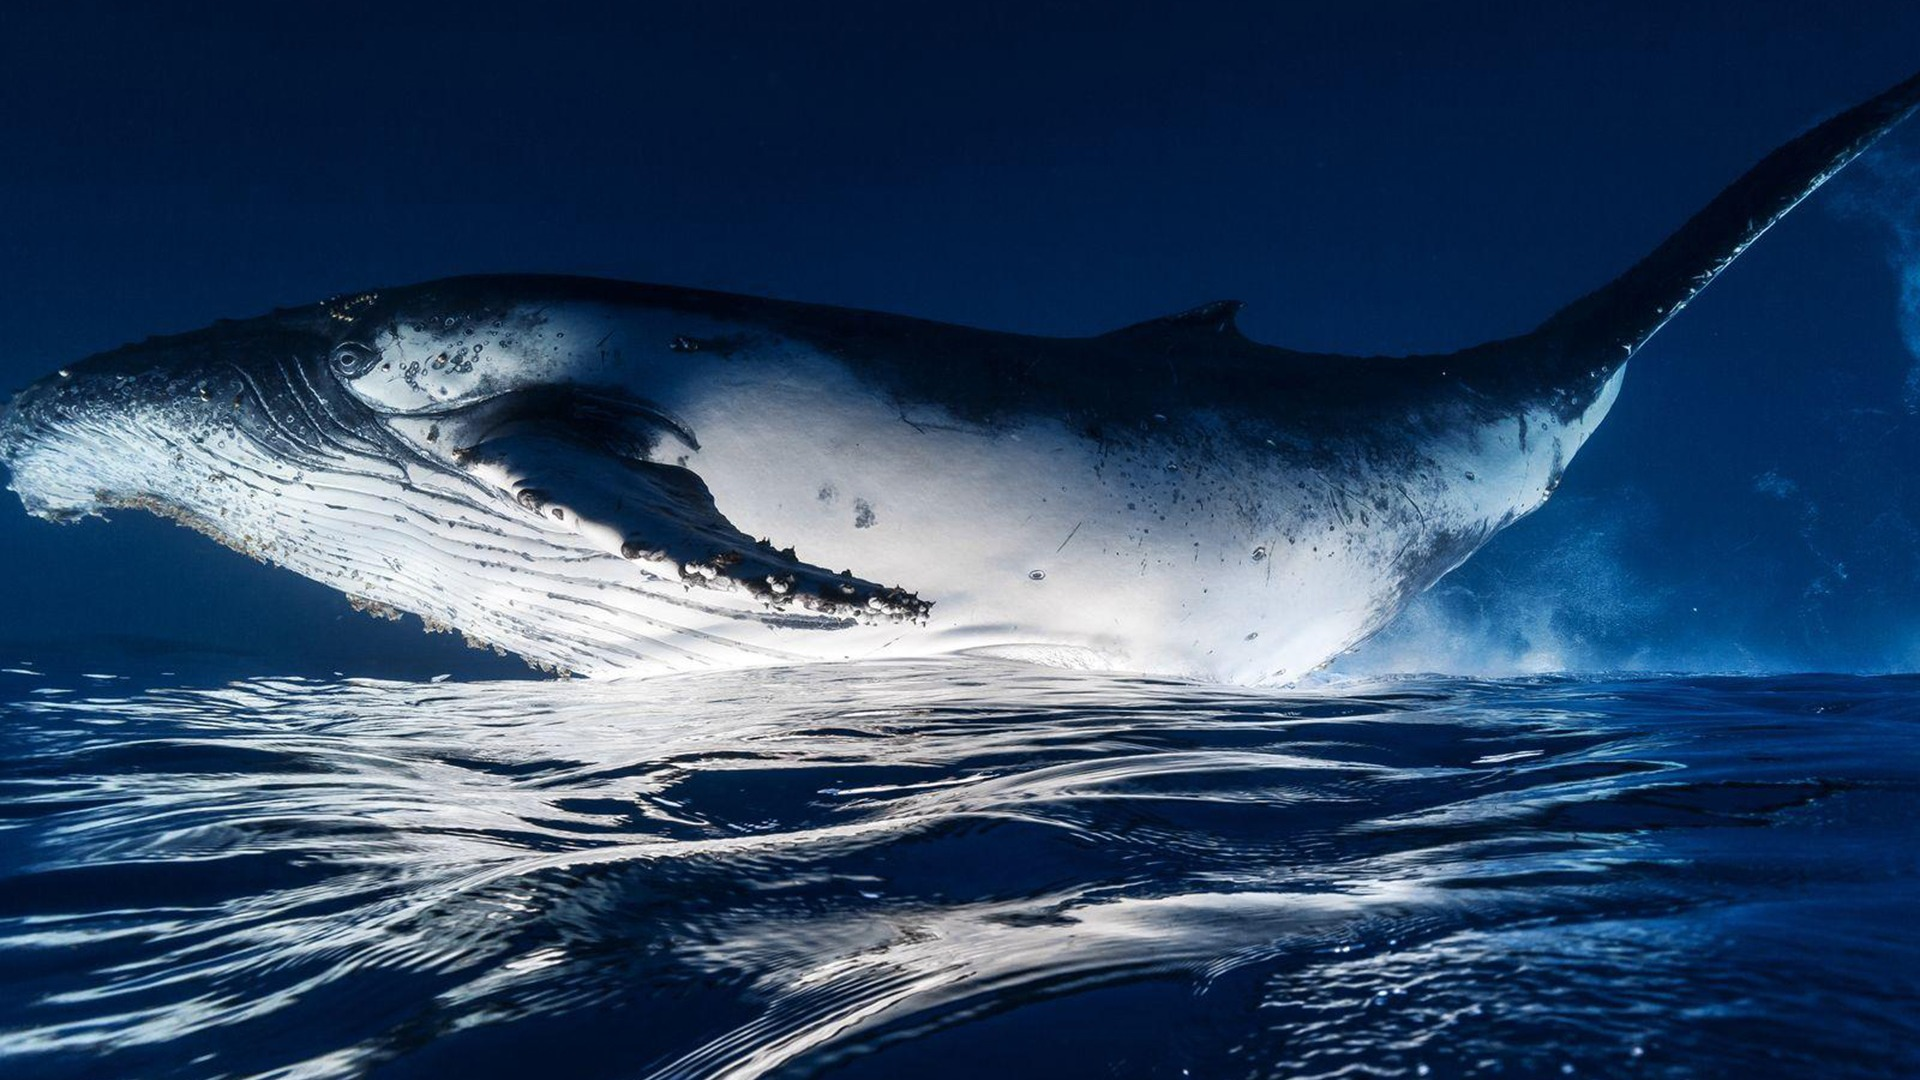 National geographic ocean photos